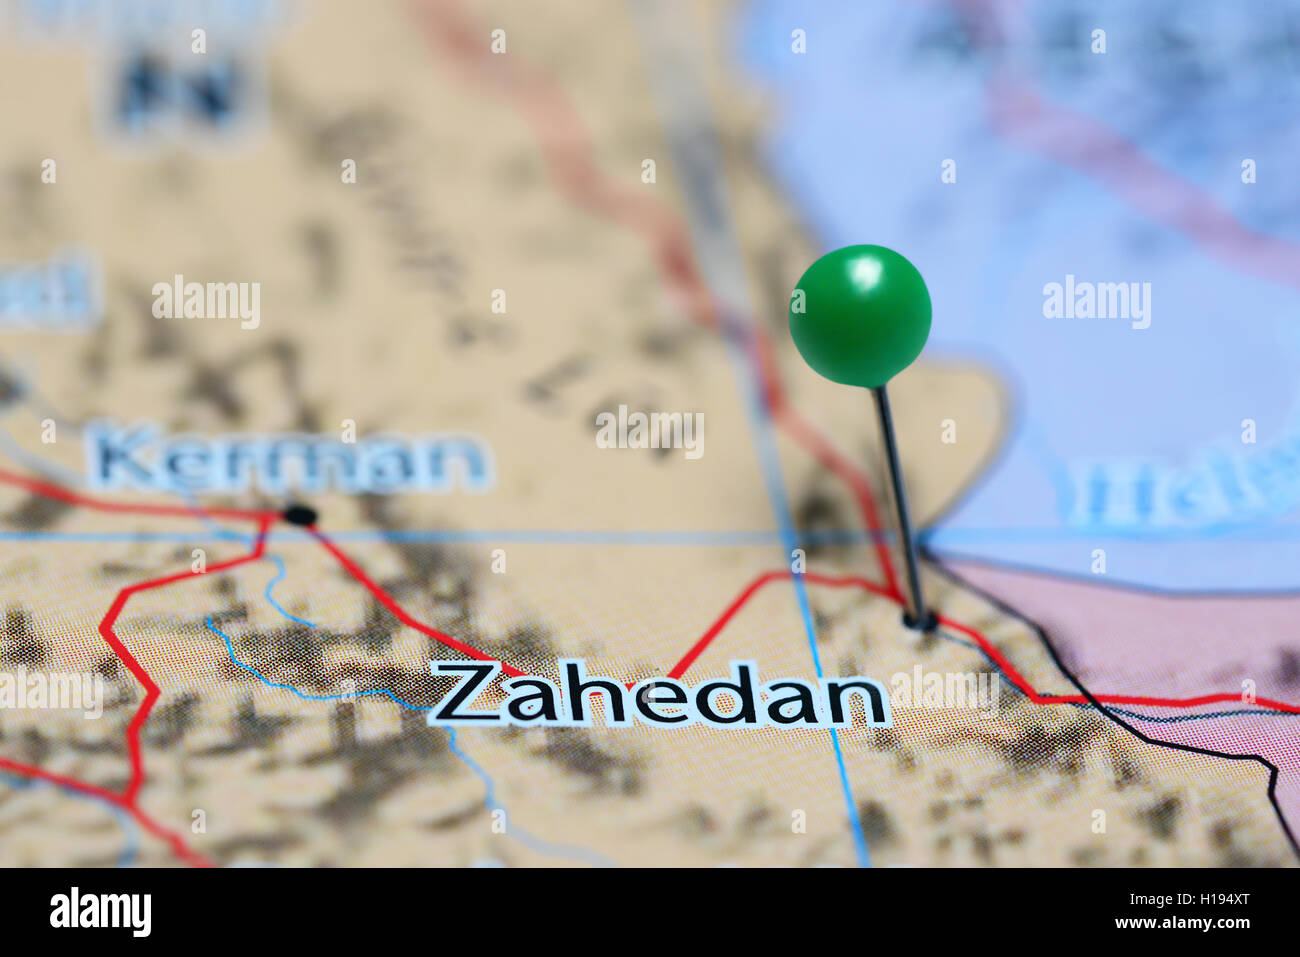 Zahedan Stock Photos Zahedan Stock Images Alamy